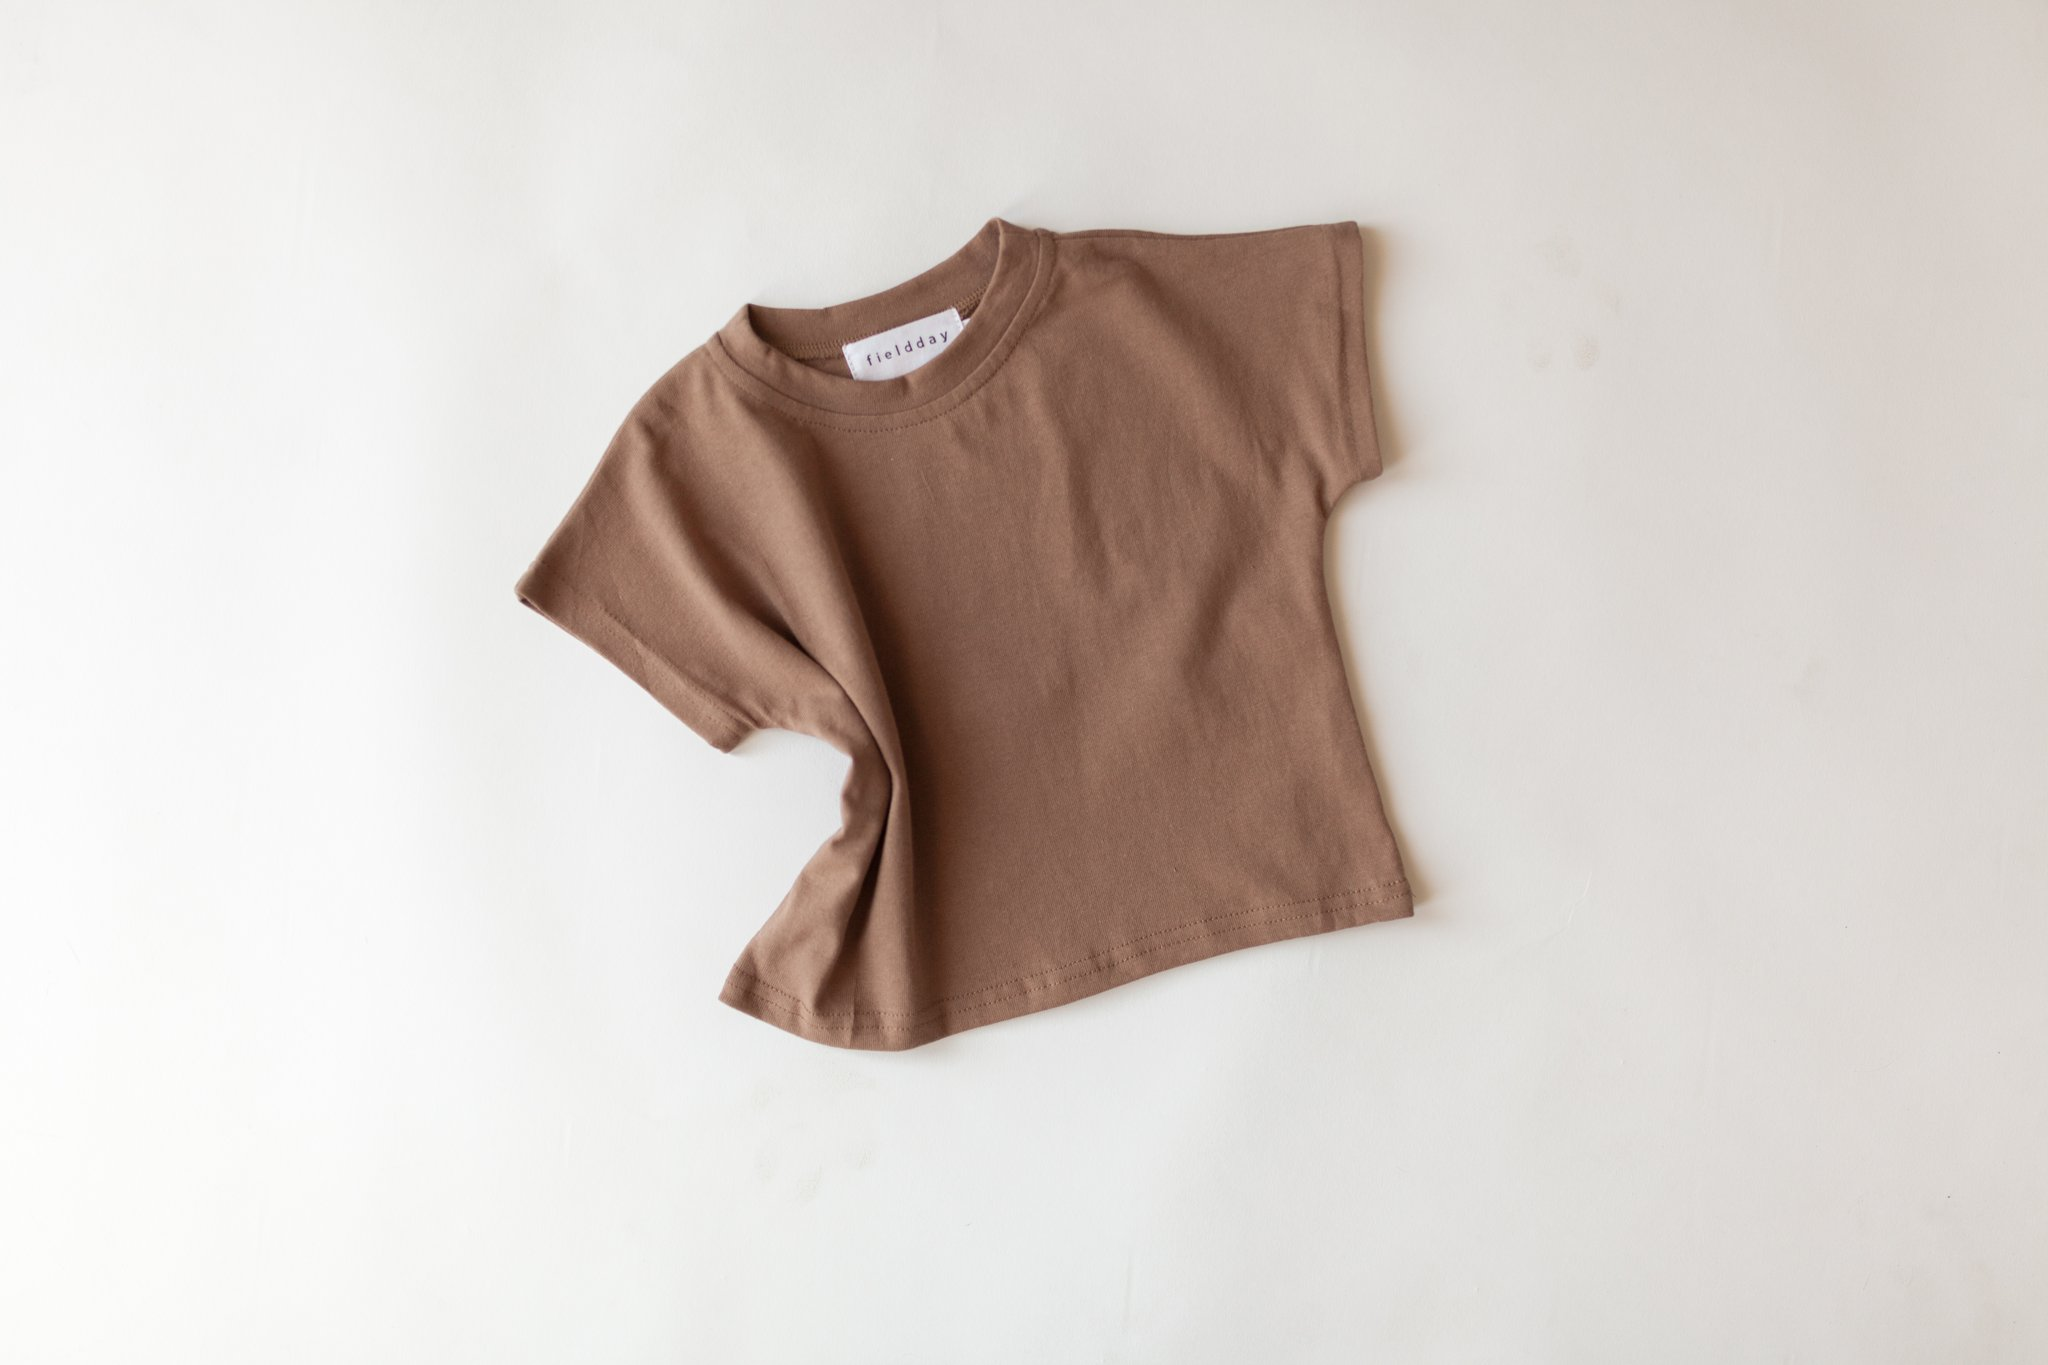 FIELDDAY Box shirt - Coral island & Fable -